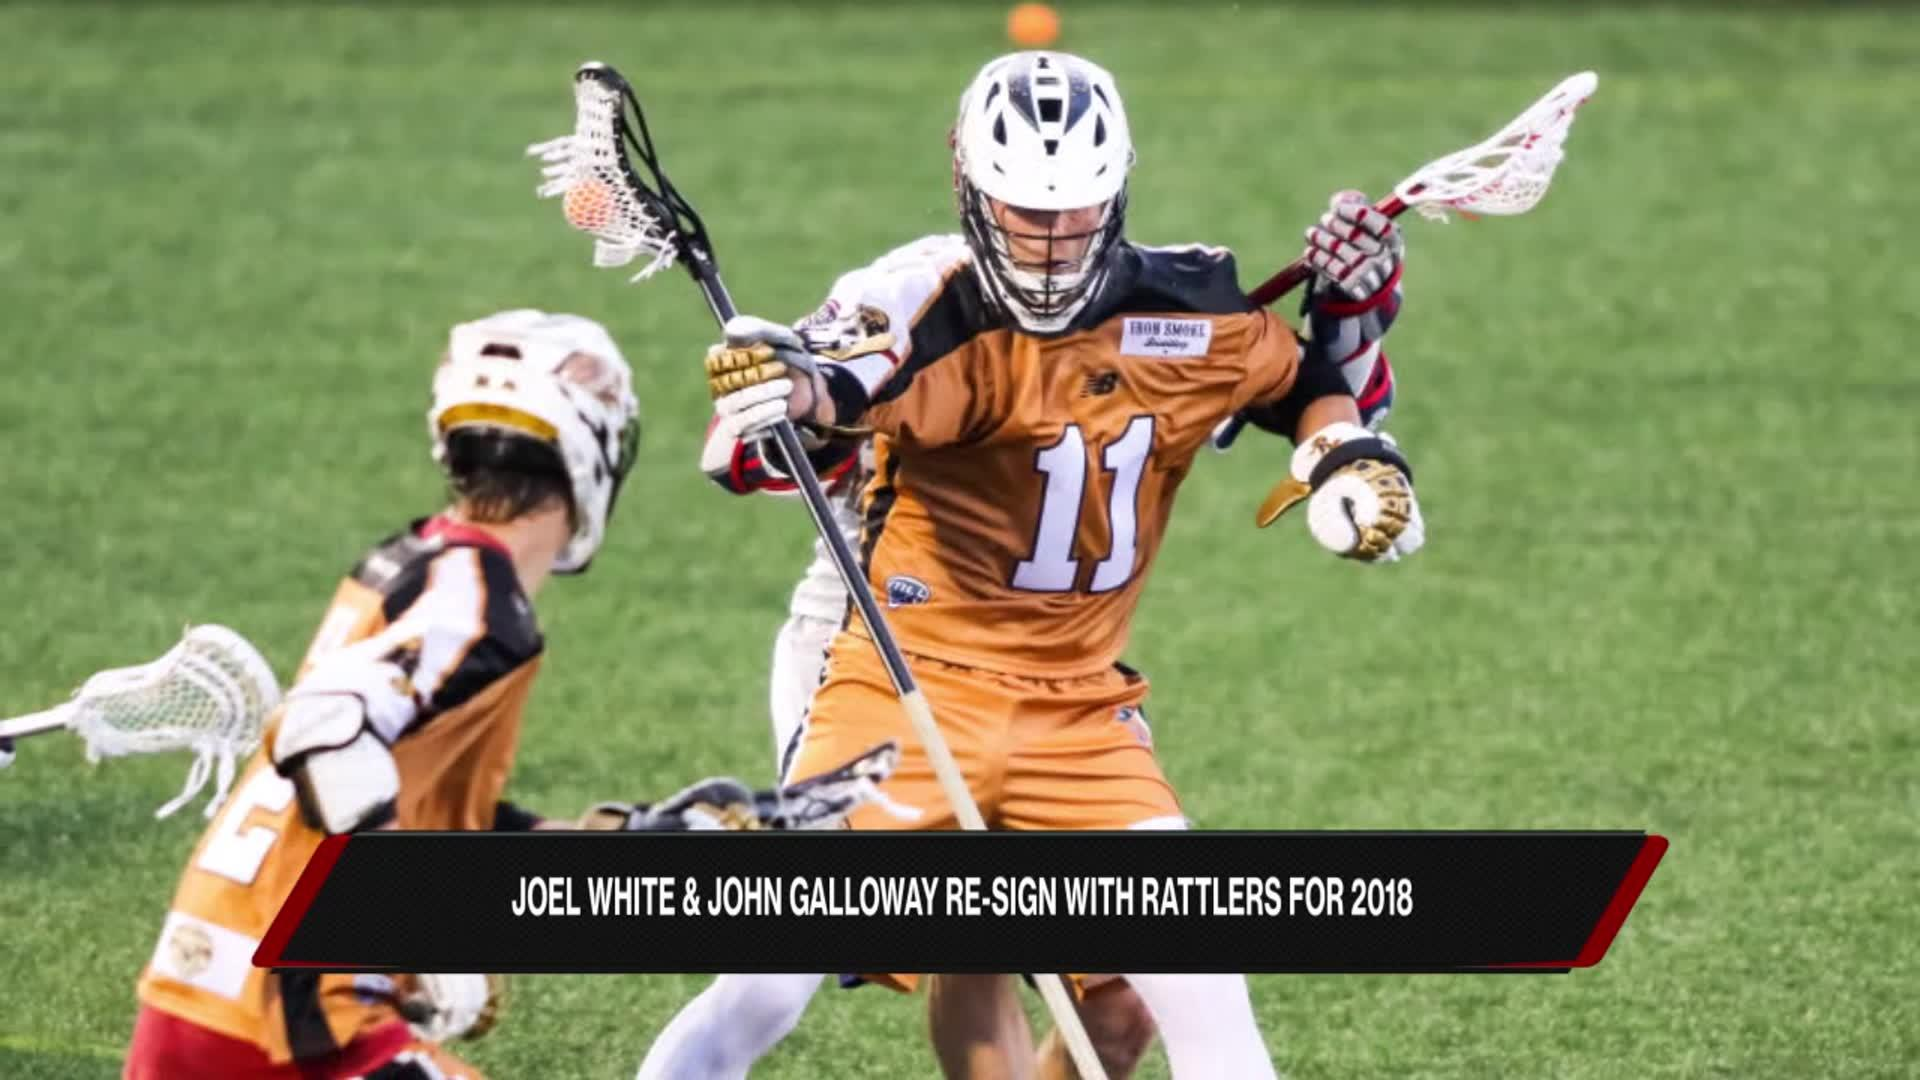 John Galloway on Re-Signing with Dallas Rattlers